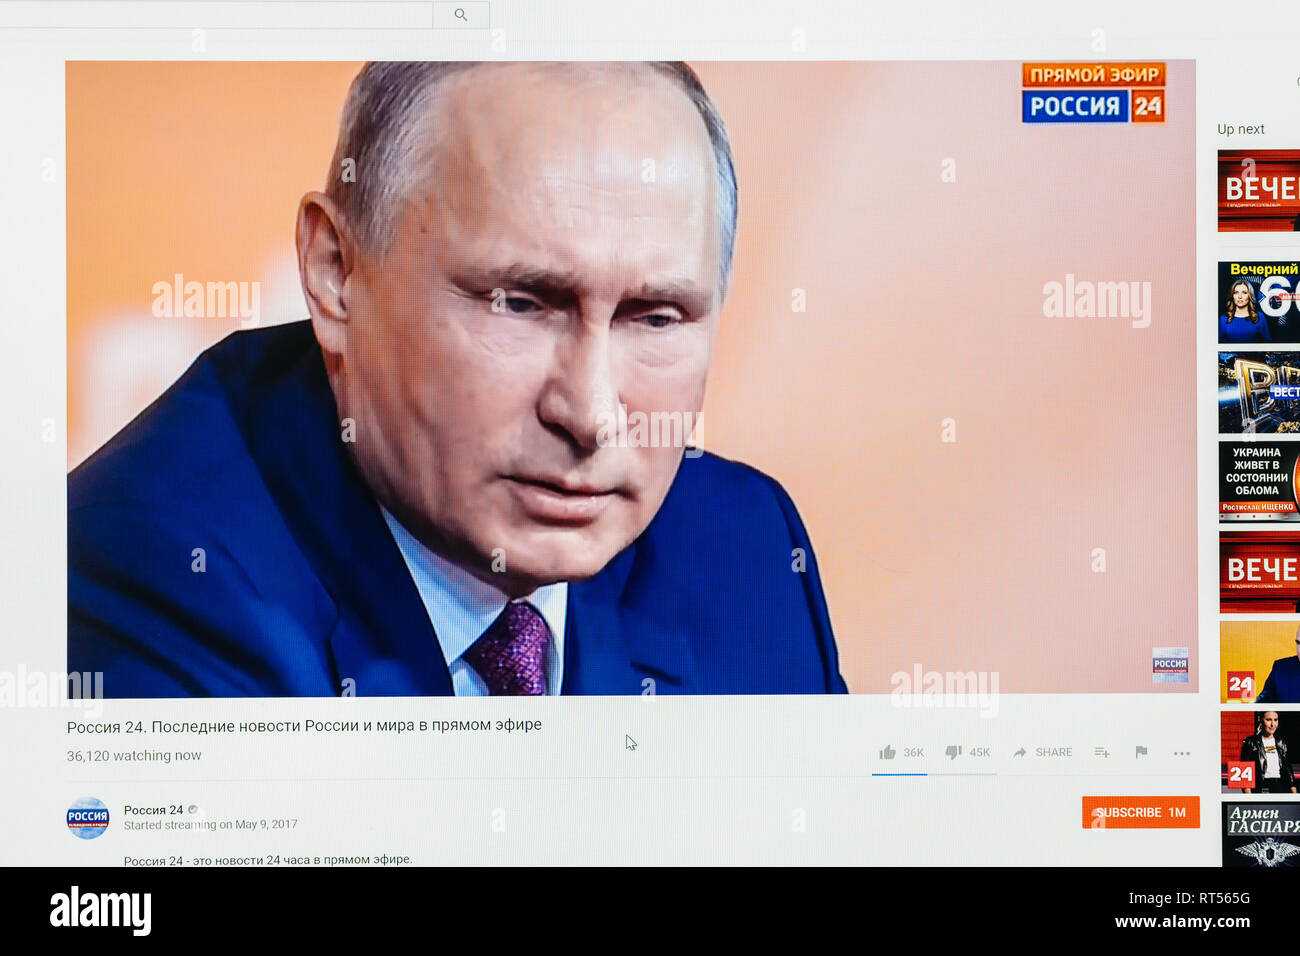 PARIS, FRANCE - DEC 14, 2017: Man watching on Youtube live channel of Rossiya RTR the pensive Russian President Vladimir Putin give final media Q&A before March election - Stock Image